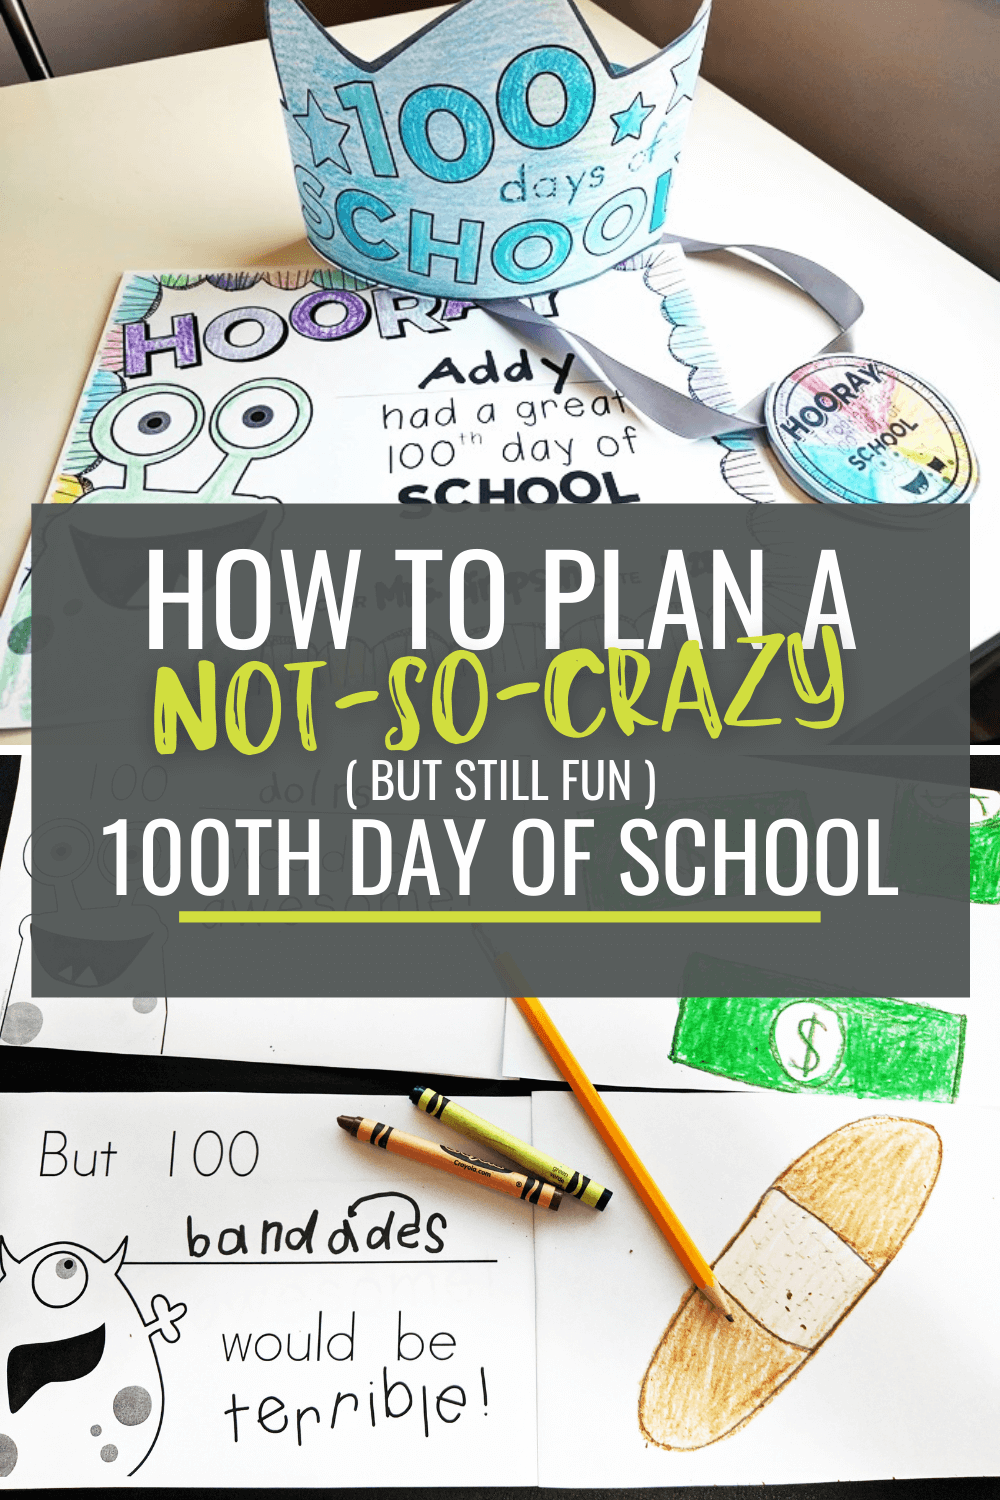 How to Plan a Not-So-Crazy 100th Day of School (or Any Minor Holiday)